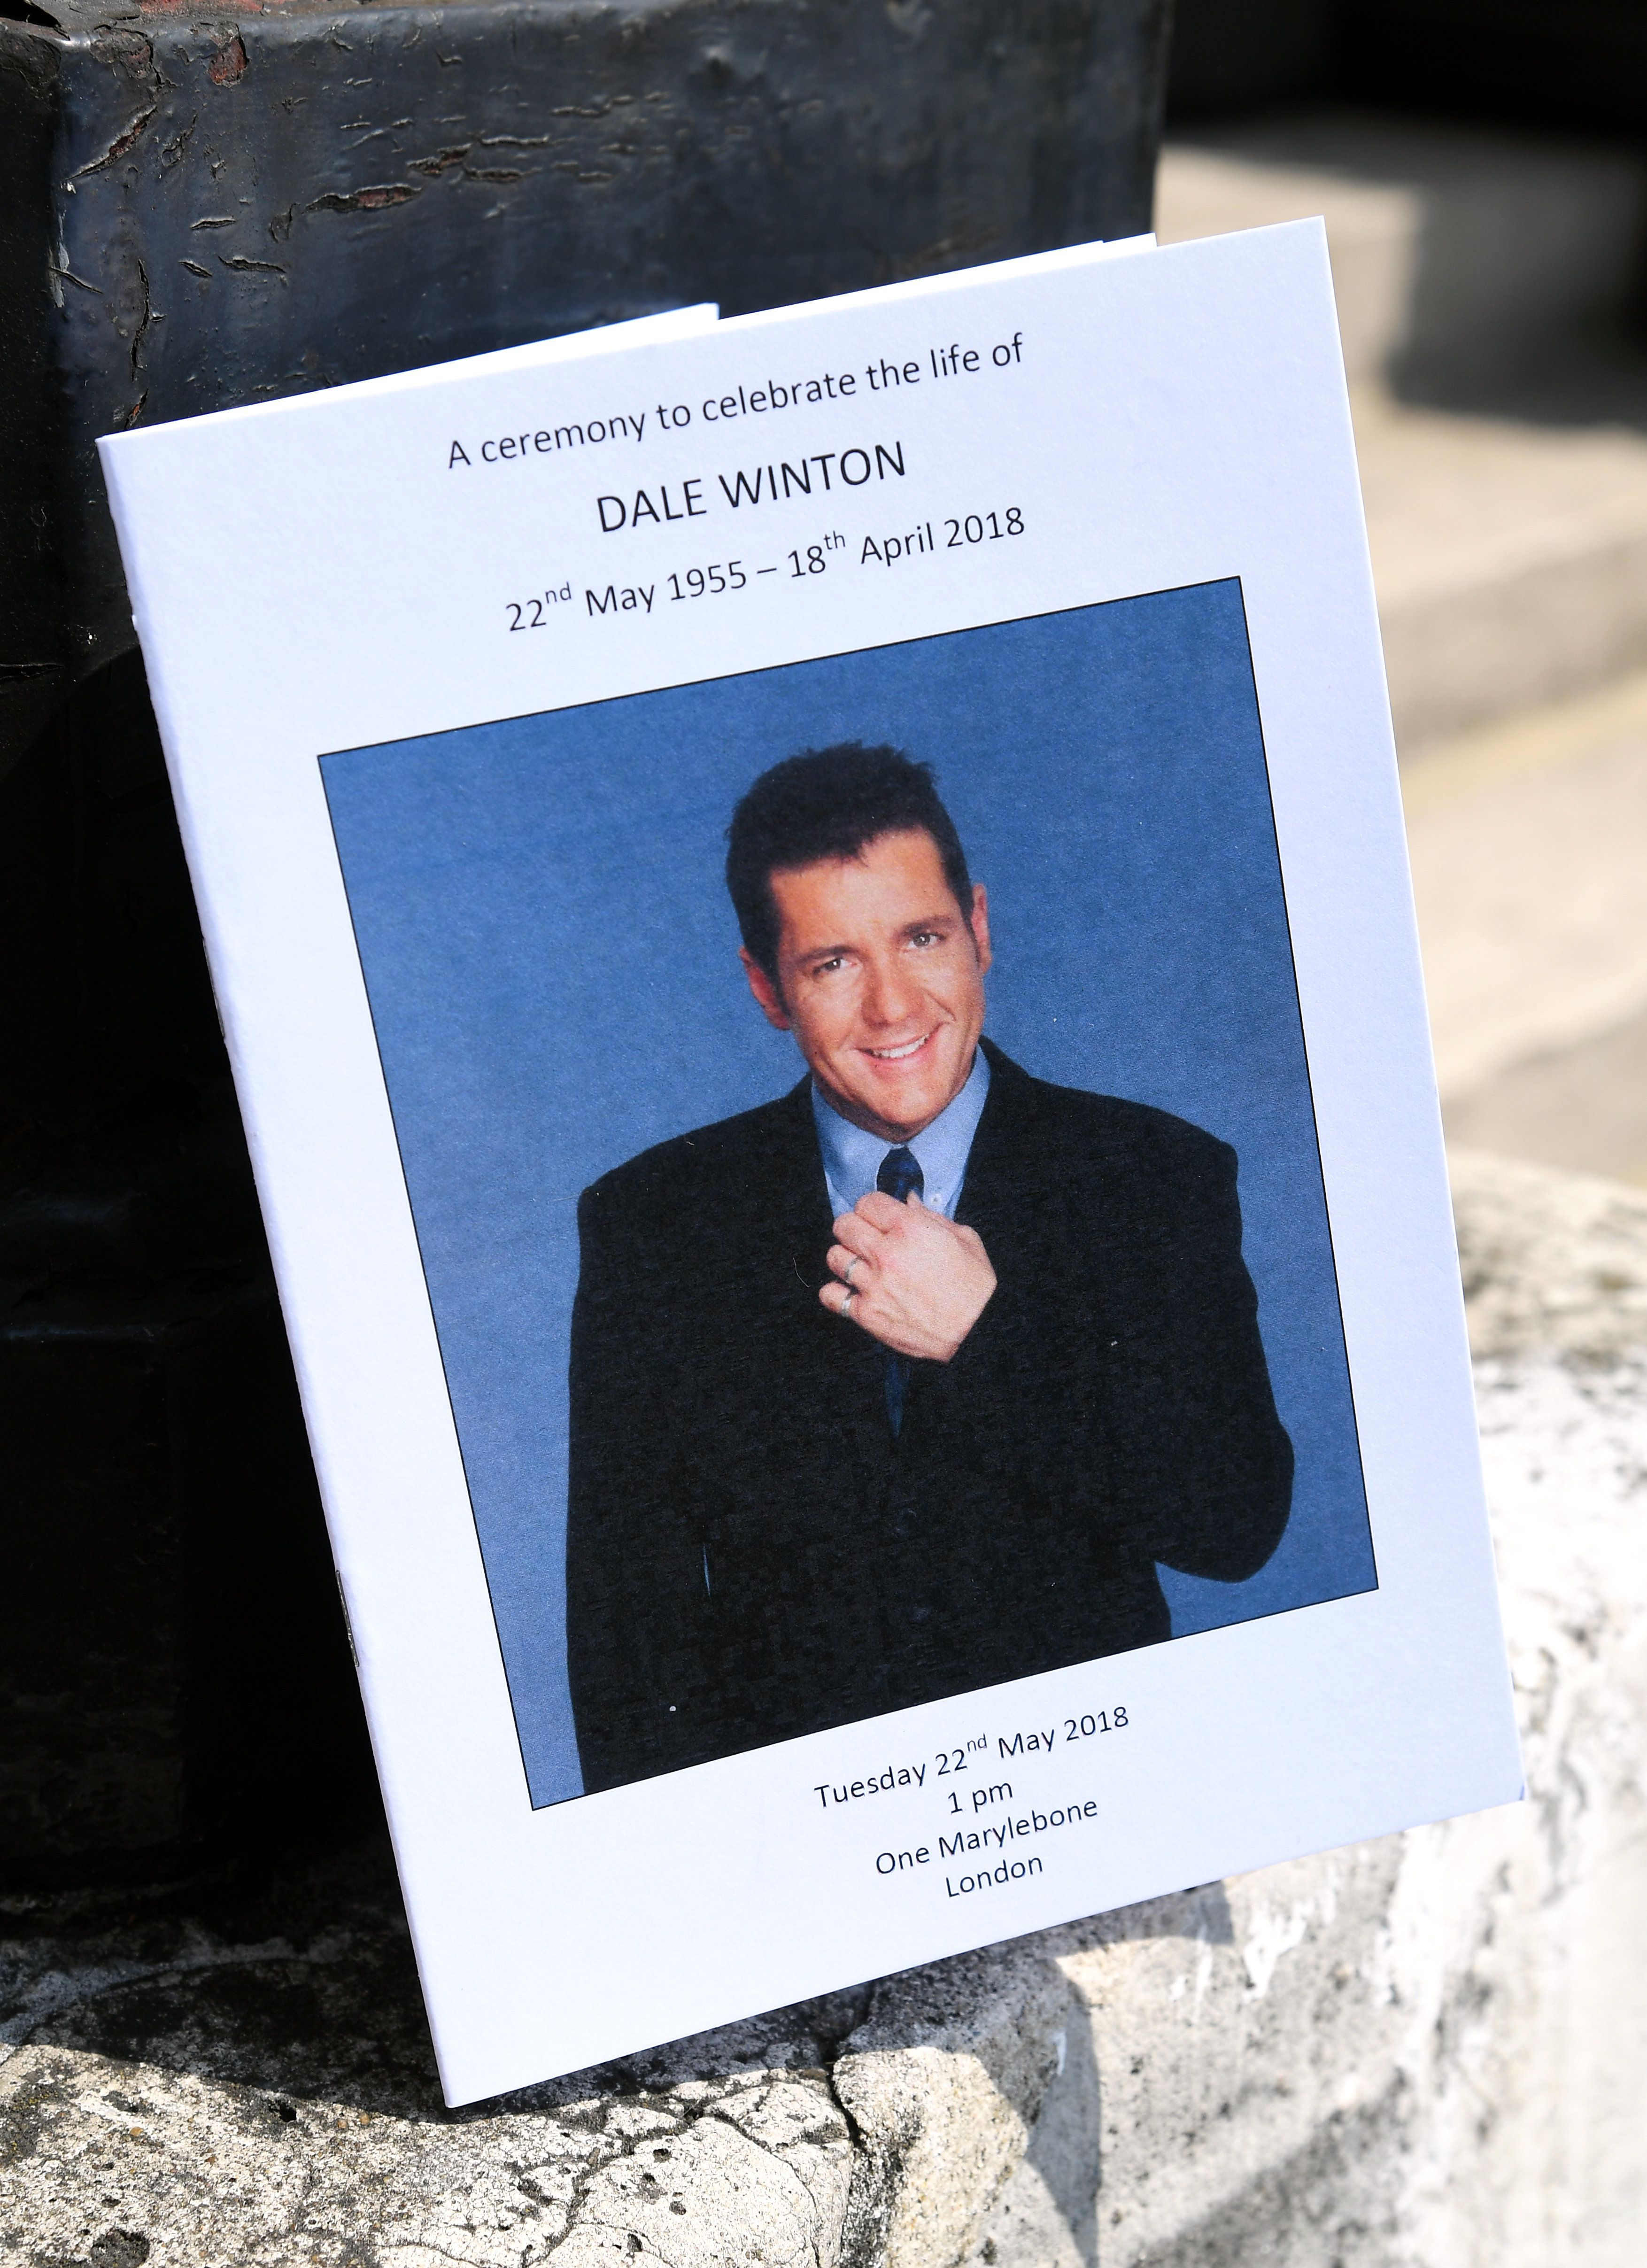 Dale Winton Laid To Rest After Star-Studded, Non-Religious